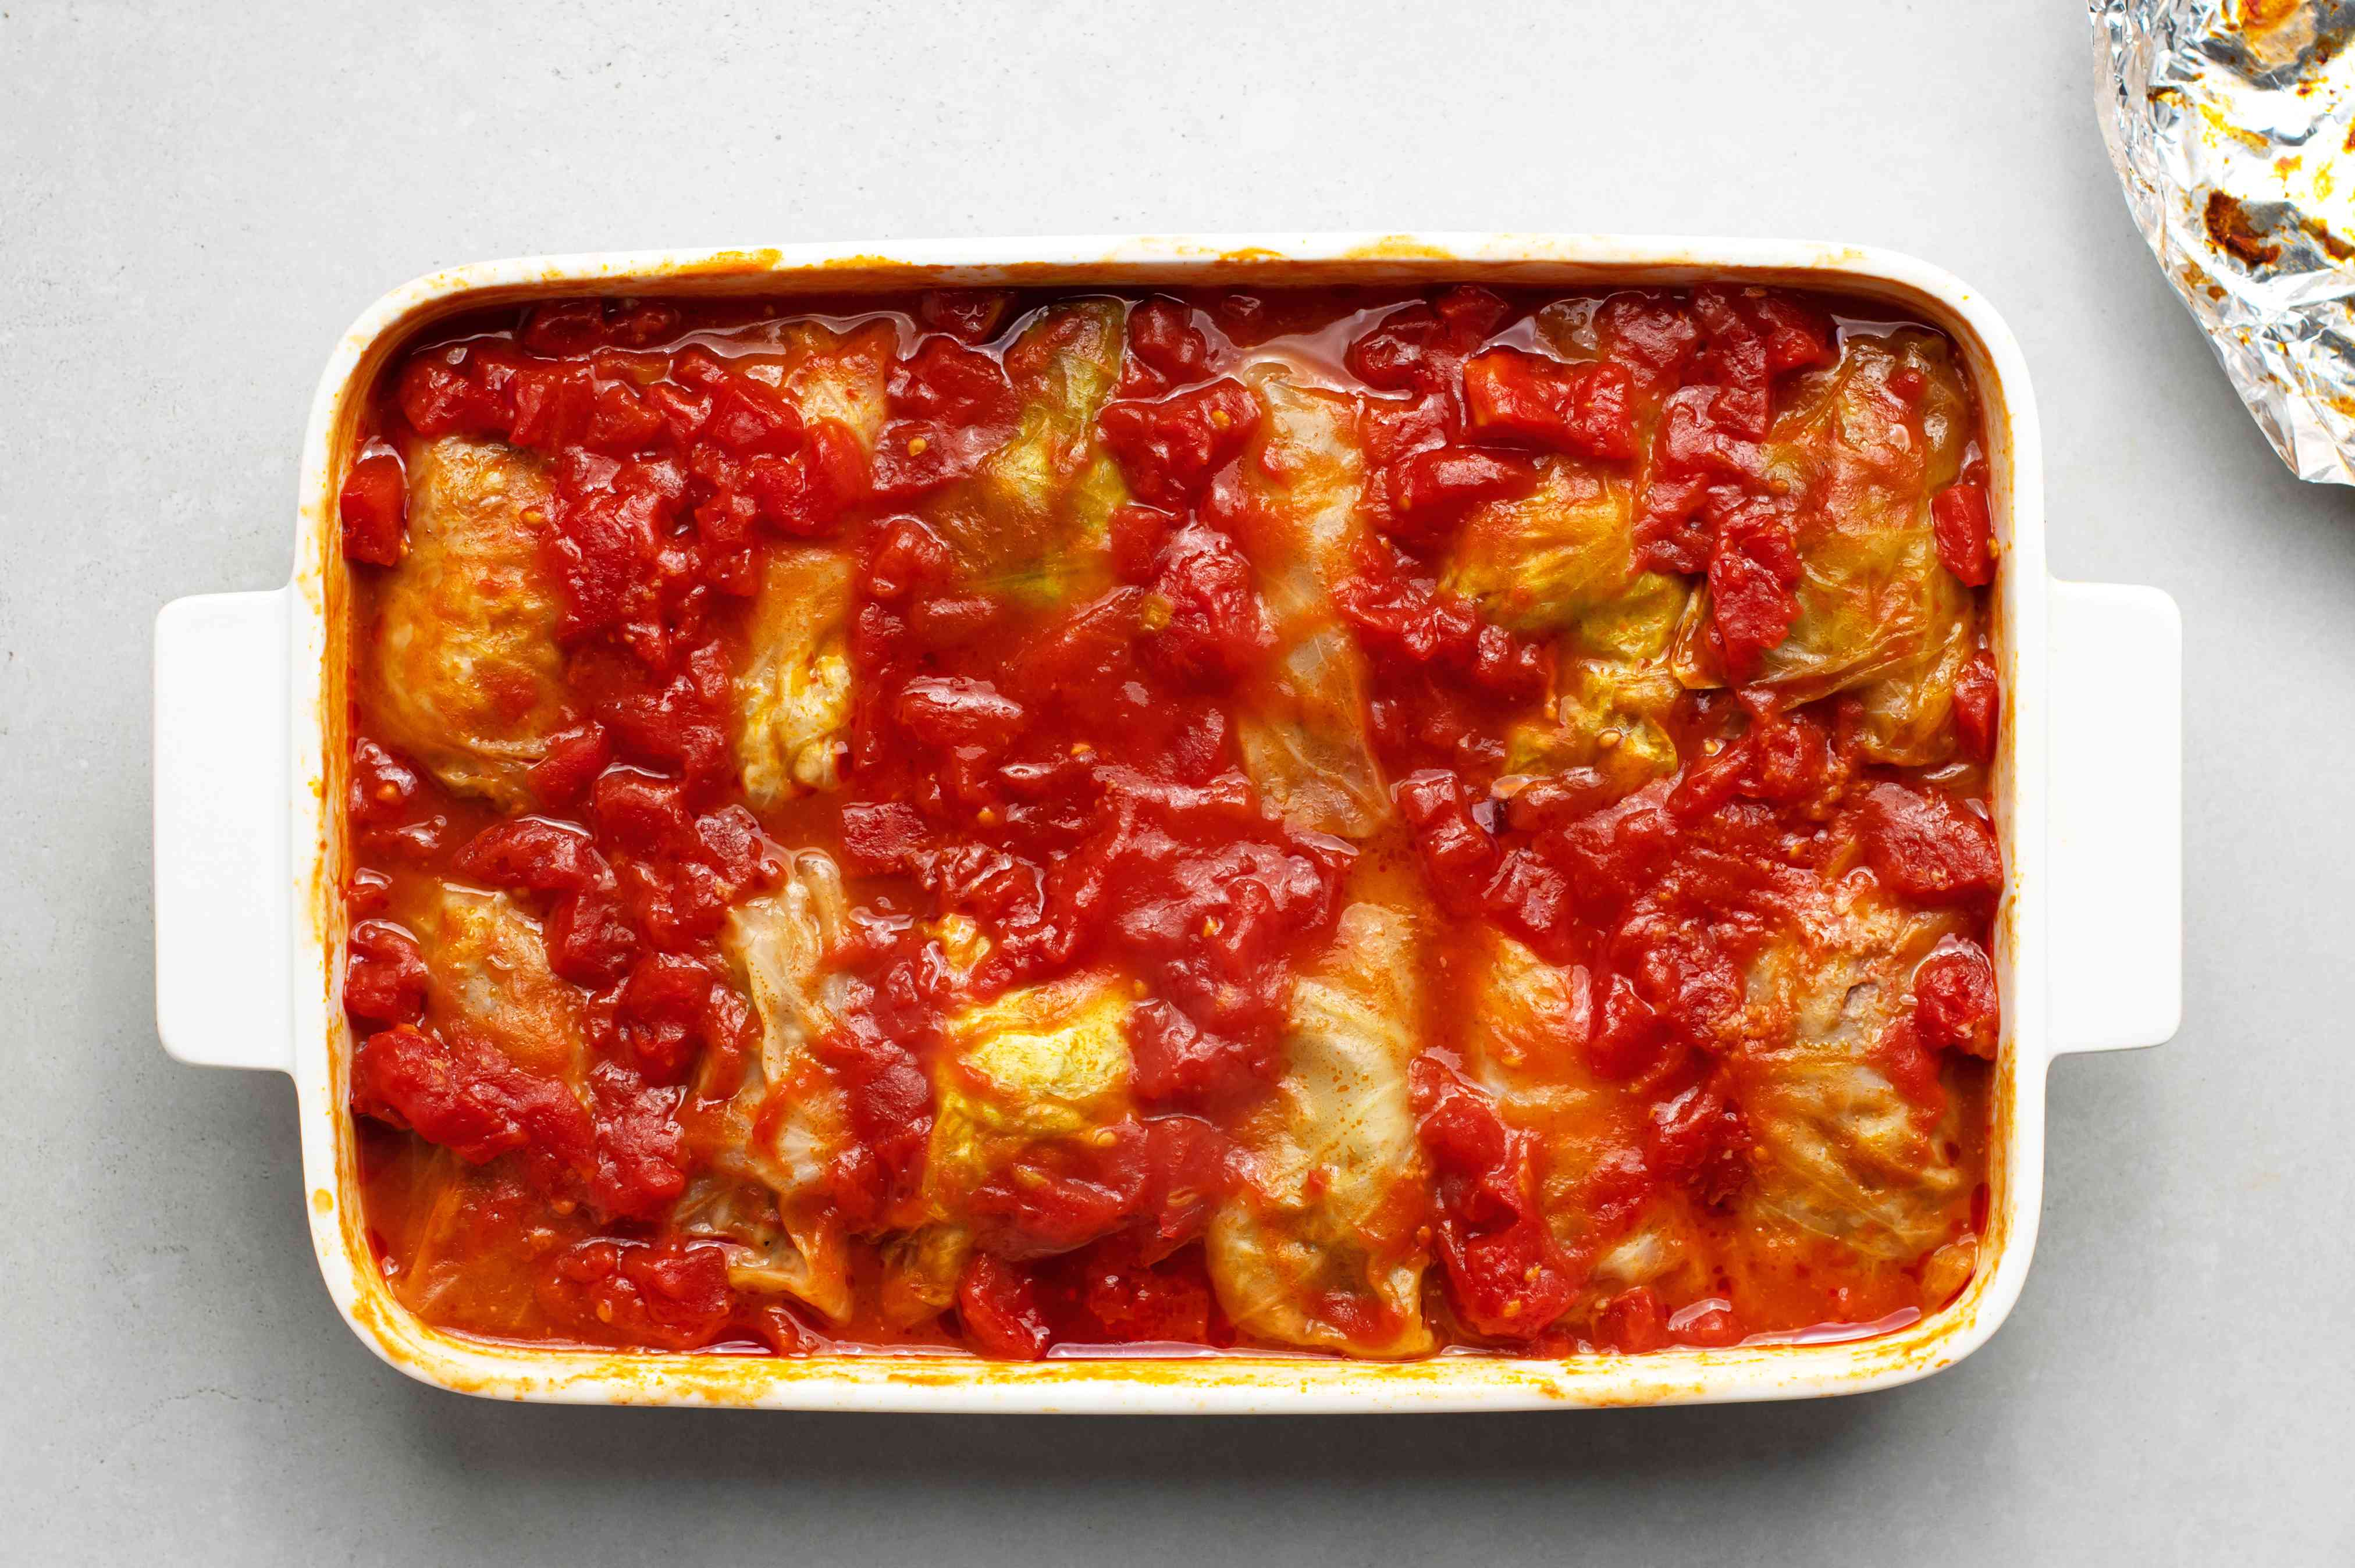 baked cabbage rolls in a baking dish